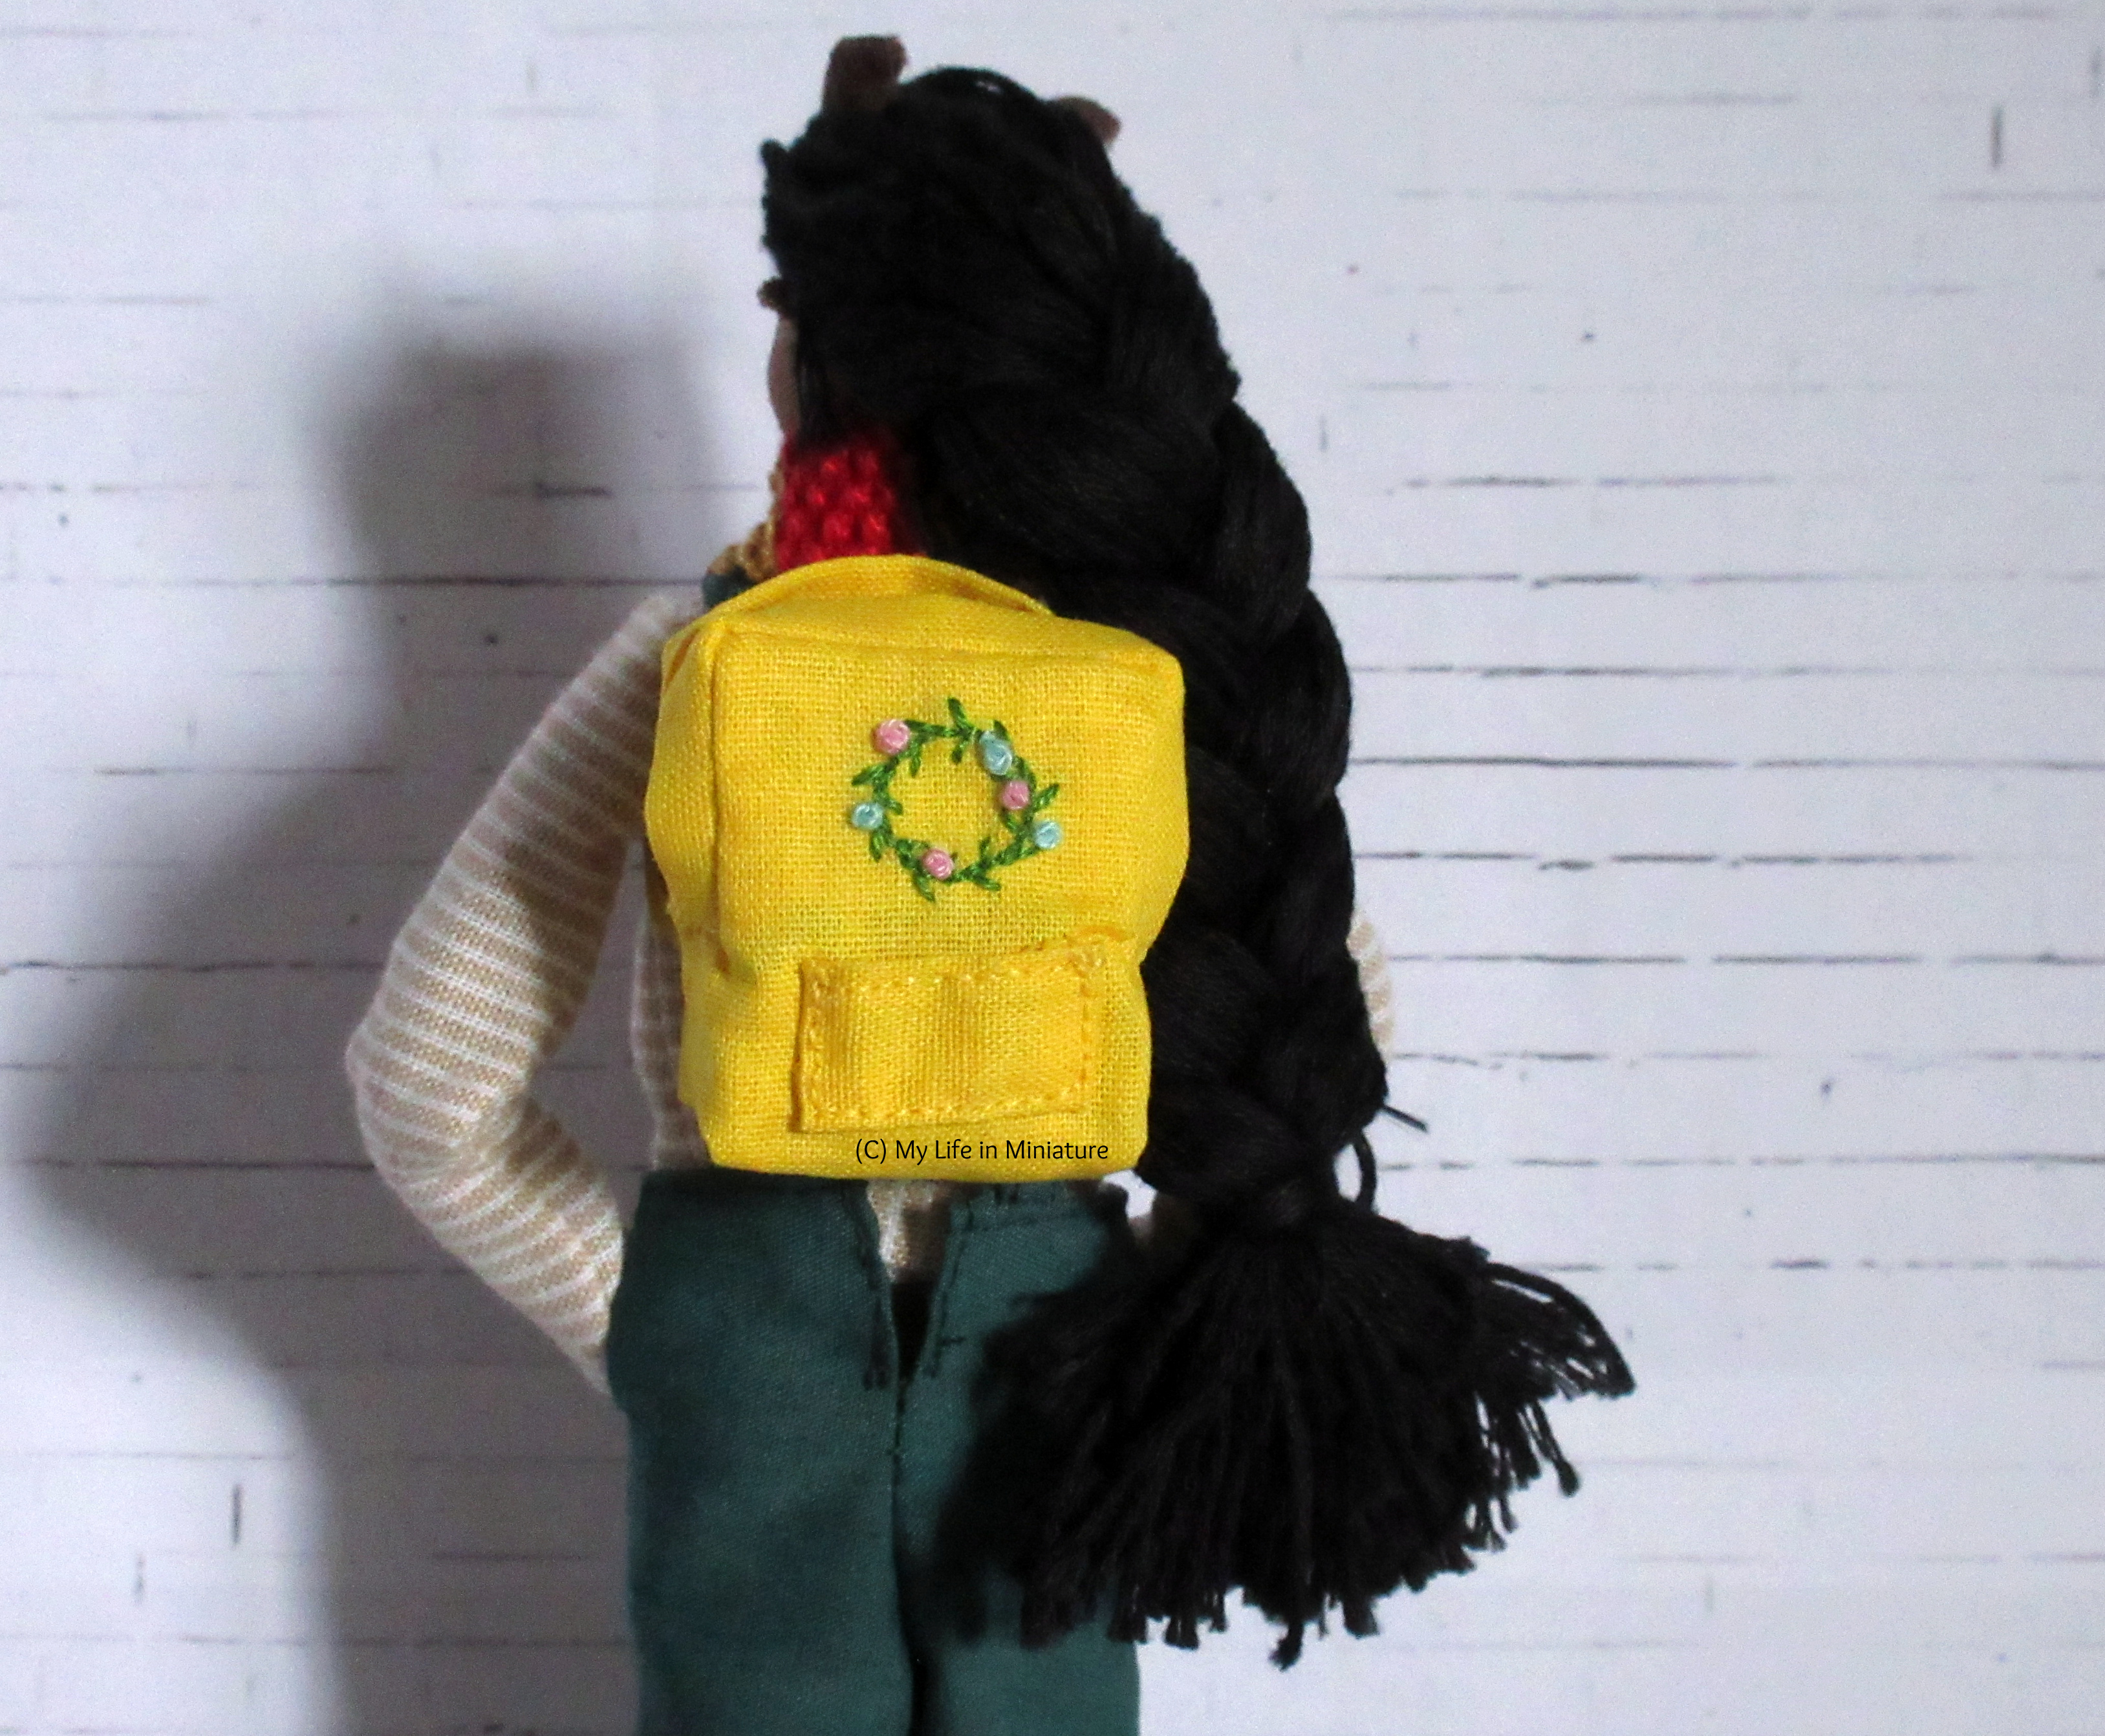 Petra faces away from the camera against a white brick background. On her back is a yellow square backpack with a pocket and an embroidered floral wreath on the front.